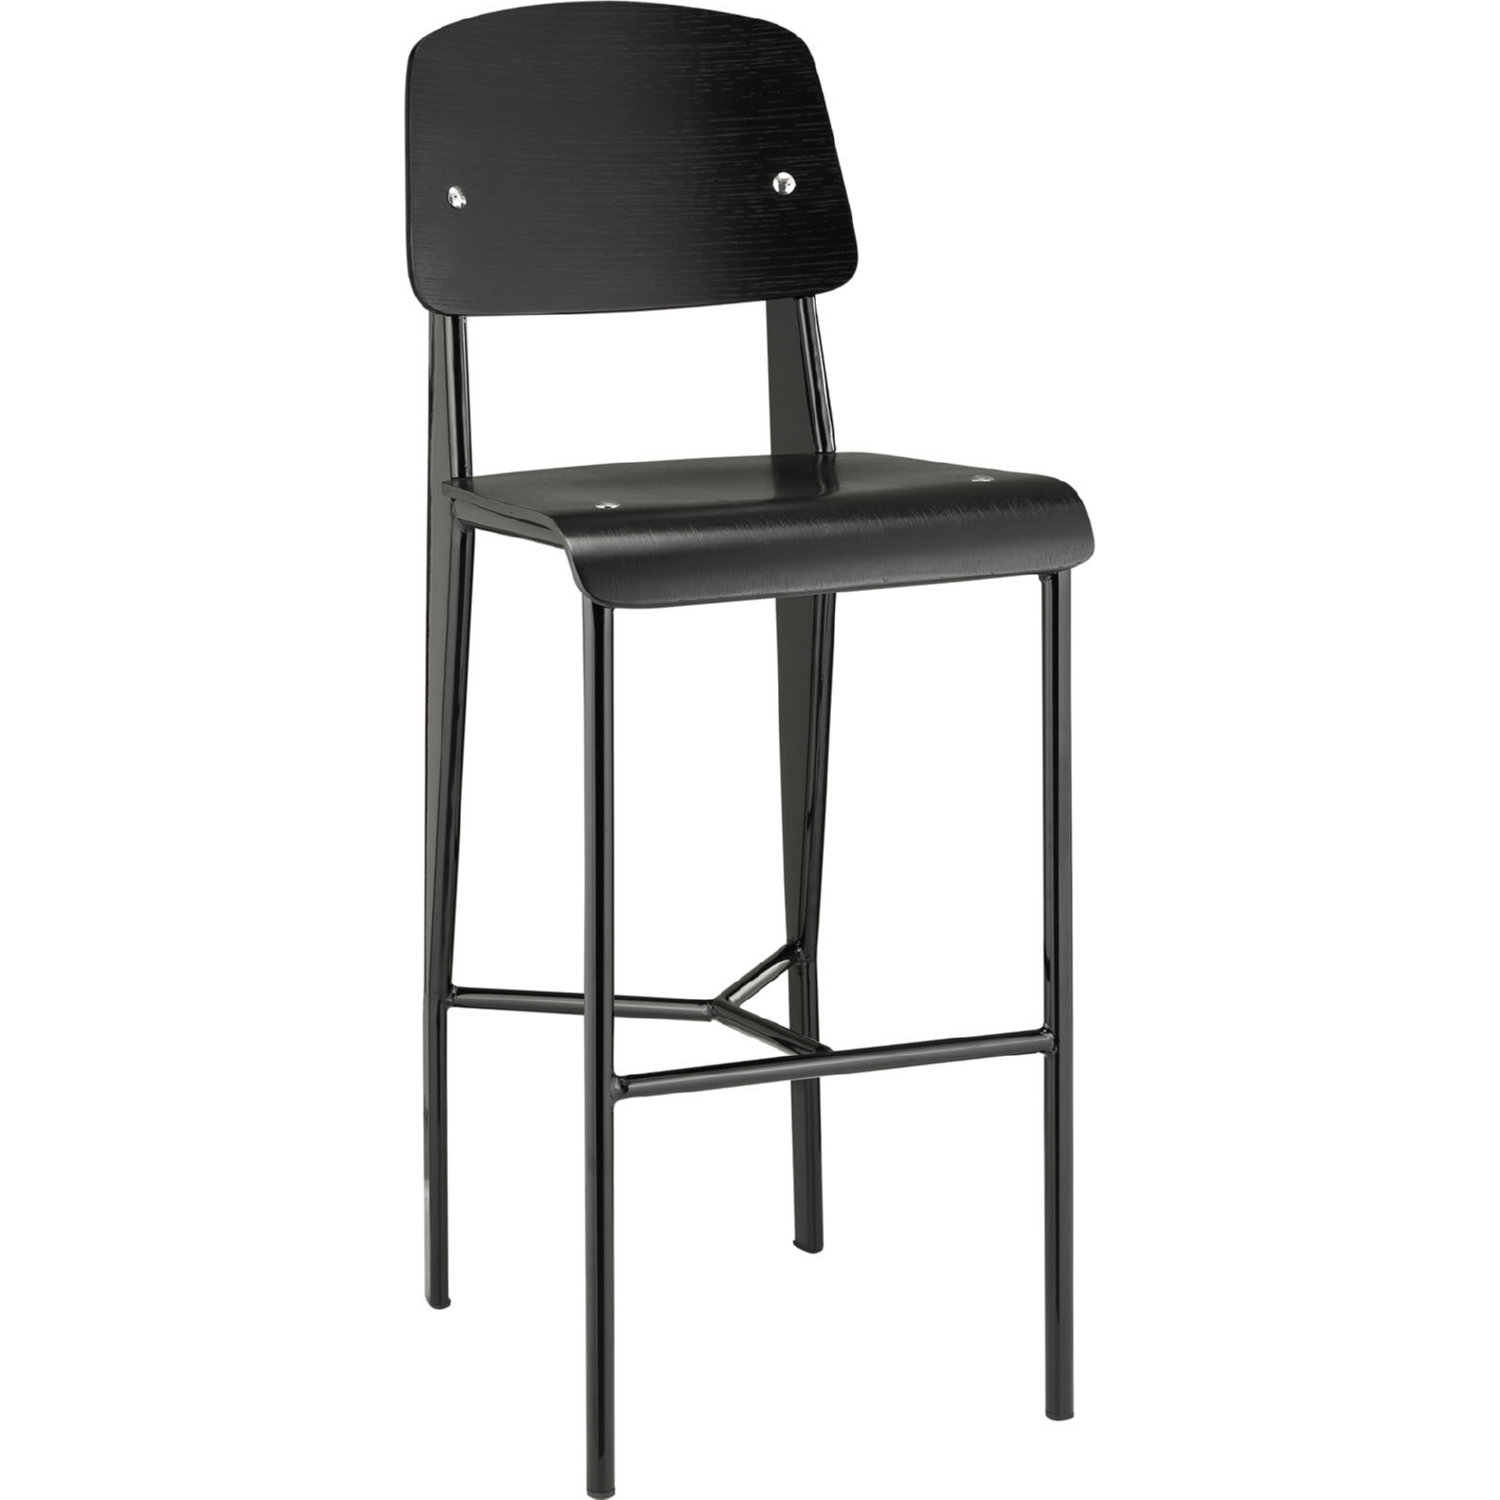 Awesome Cabin Bar Stool W Bentwood Back Seat On Black Steel Frame By Modway Pabps2019 Chair Design Images Pabps2019Com